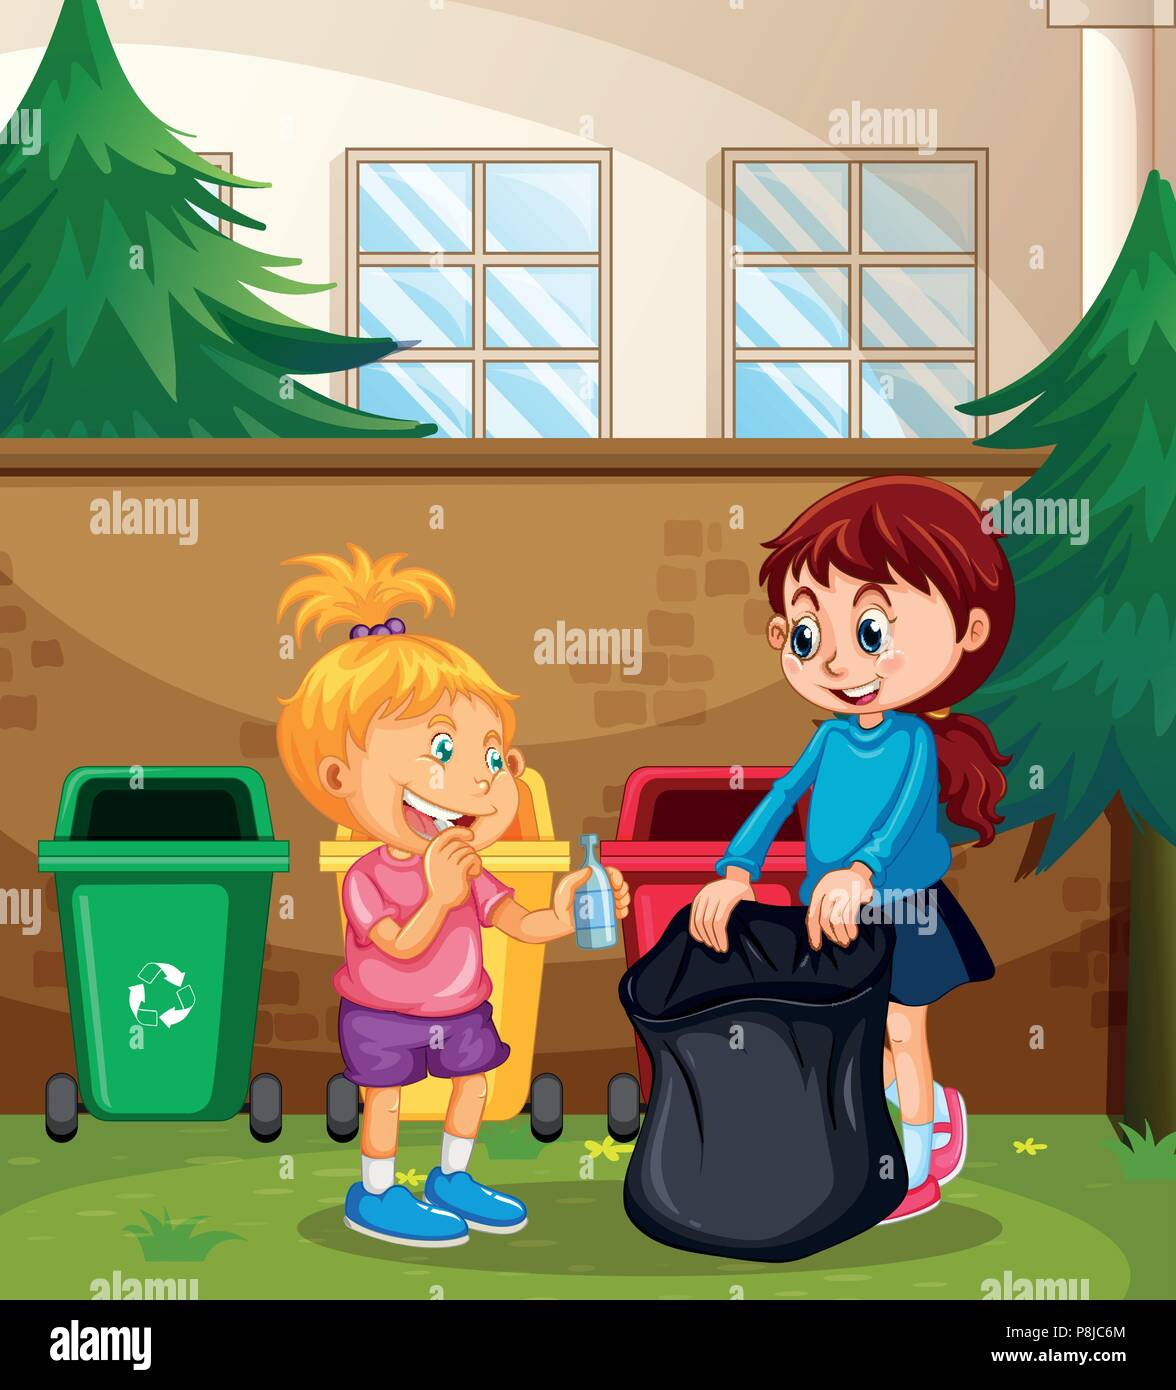 Children Sorting the Waste illustration - Stock Image